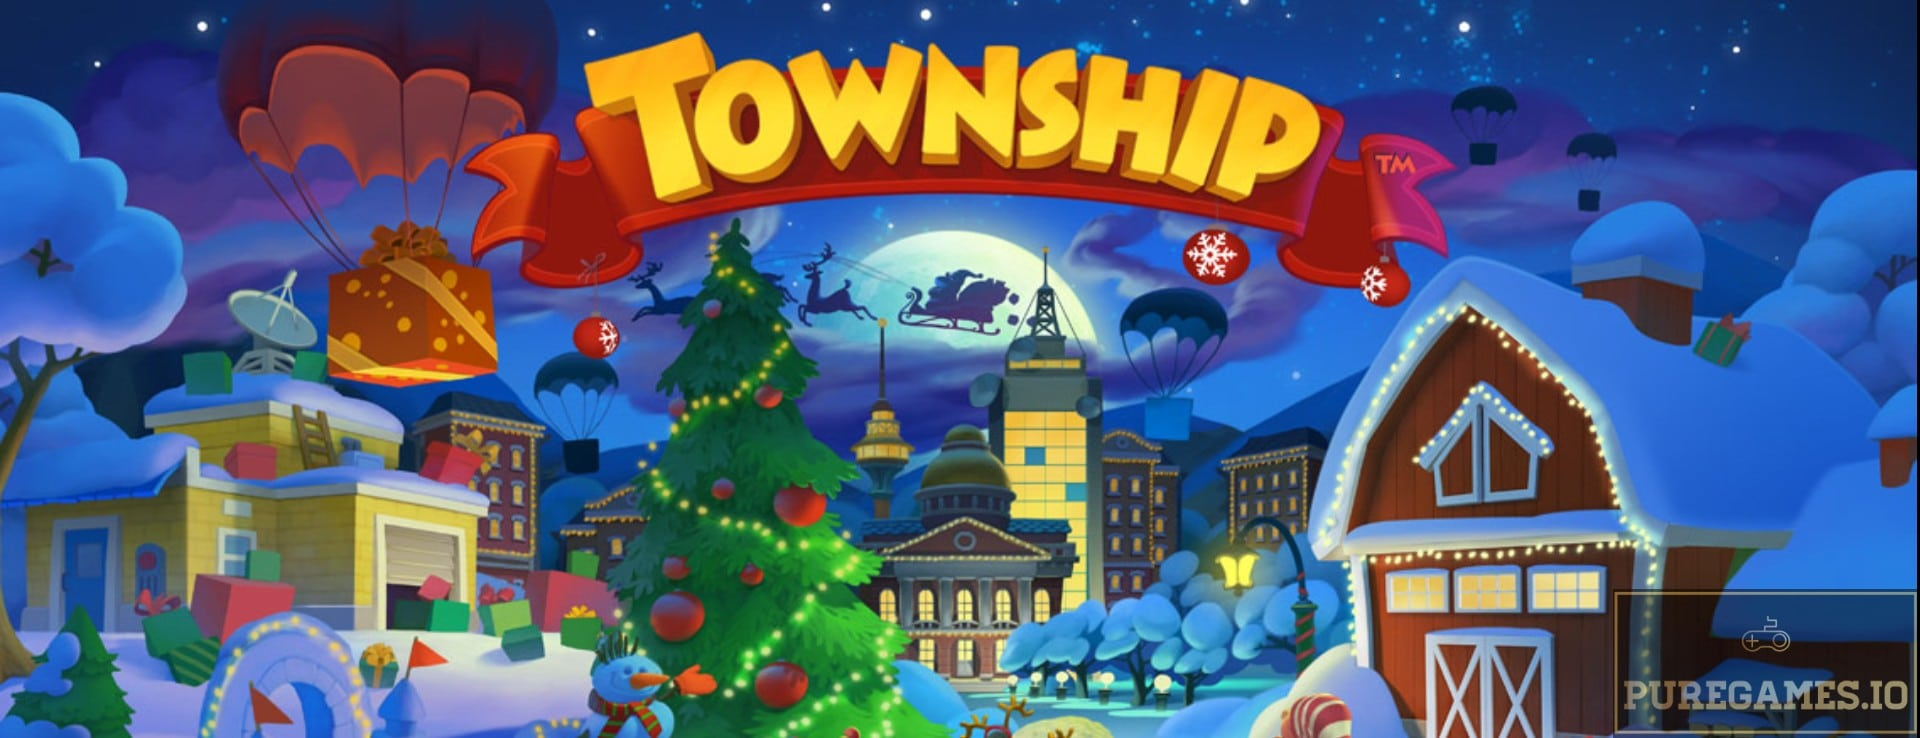 Download Township APK for Android/iOS 10